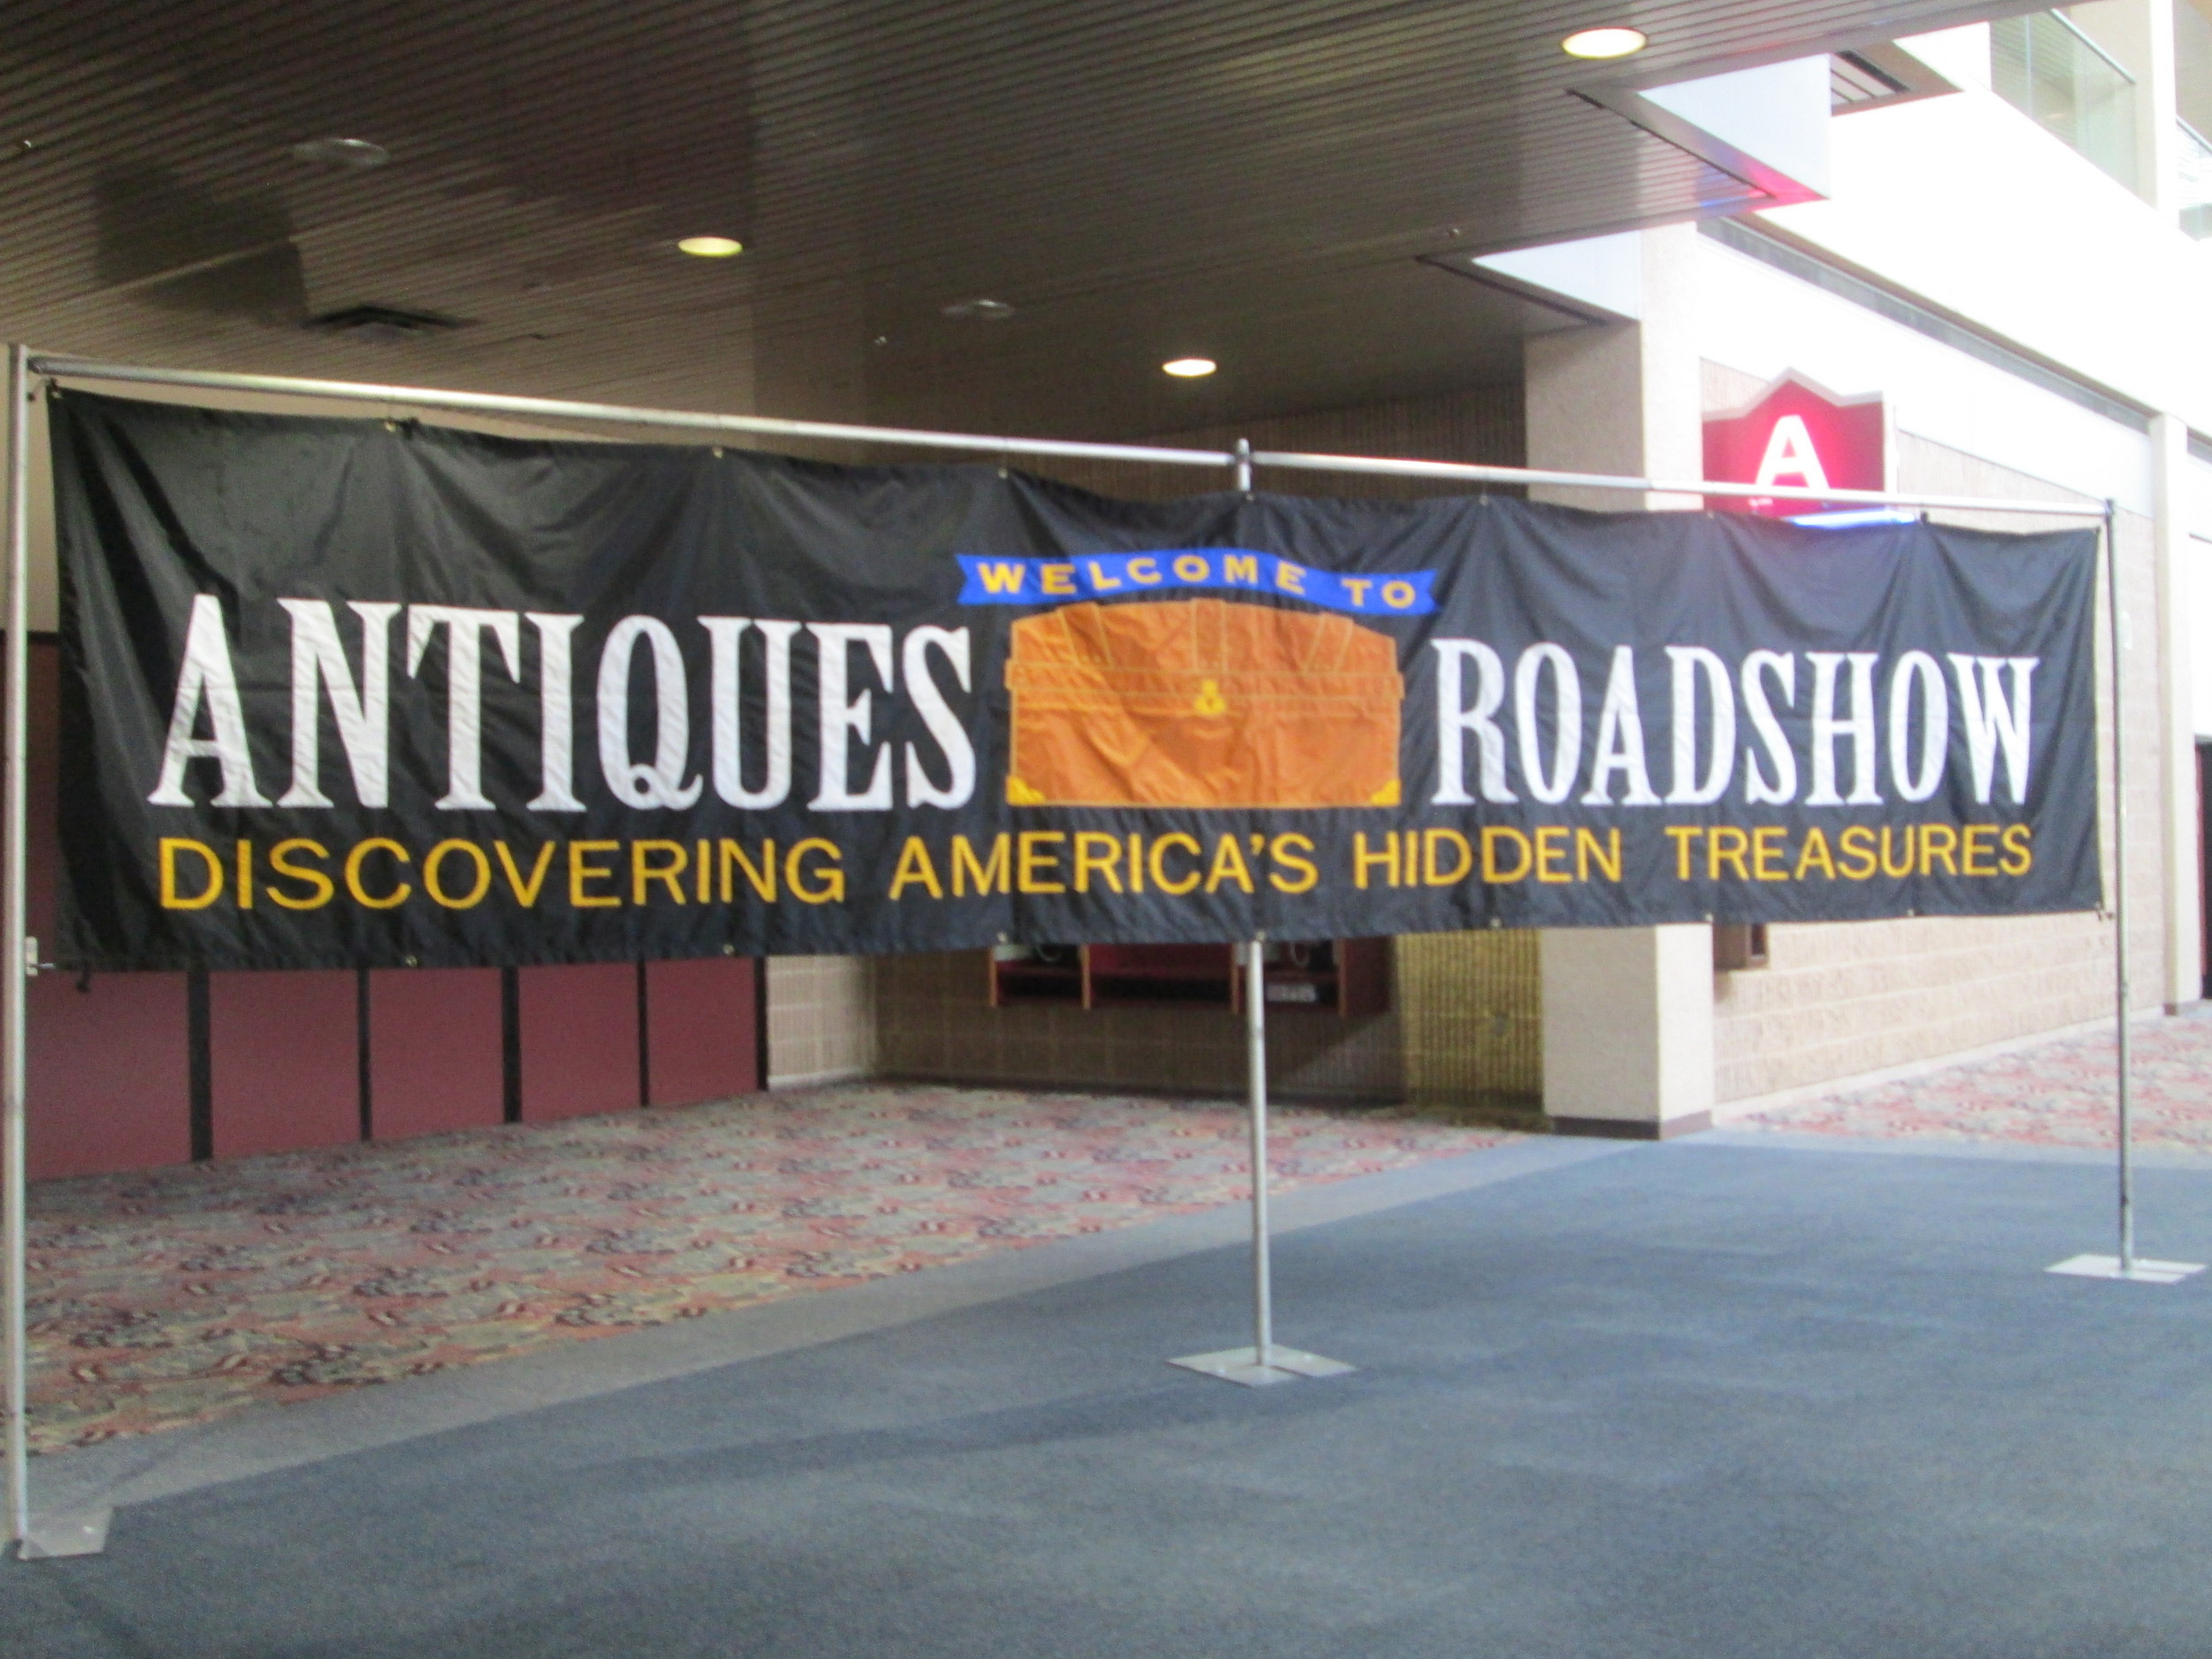 """Antiques Roadshow"" welcome banner"